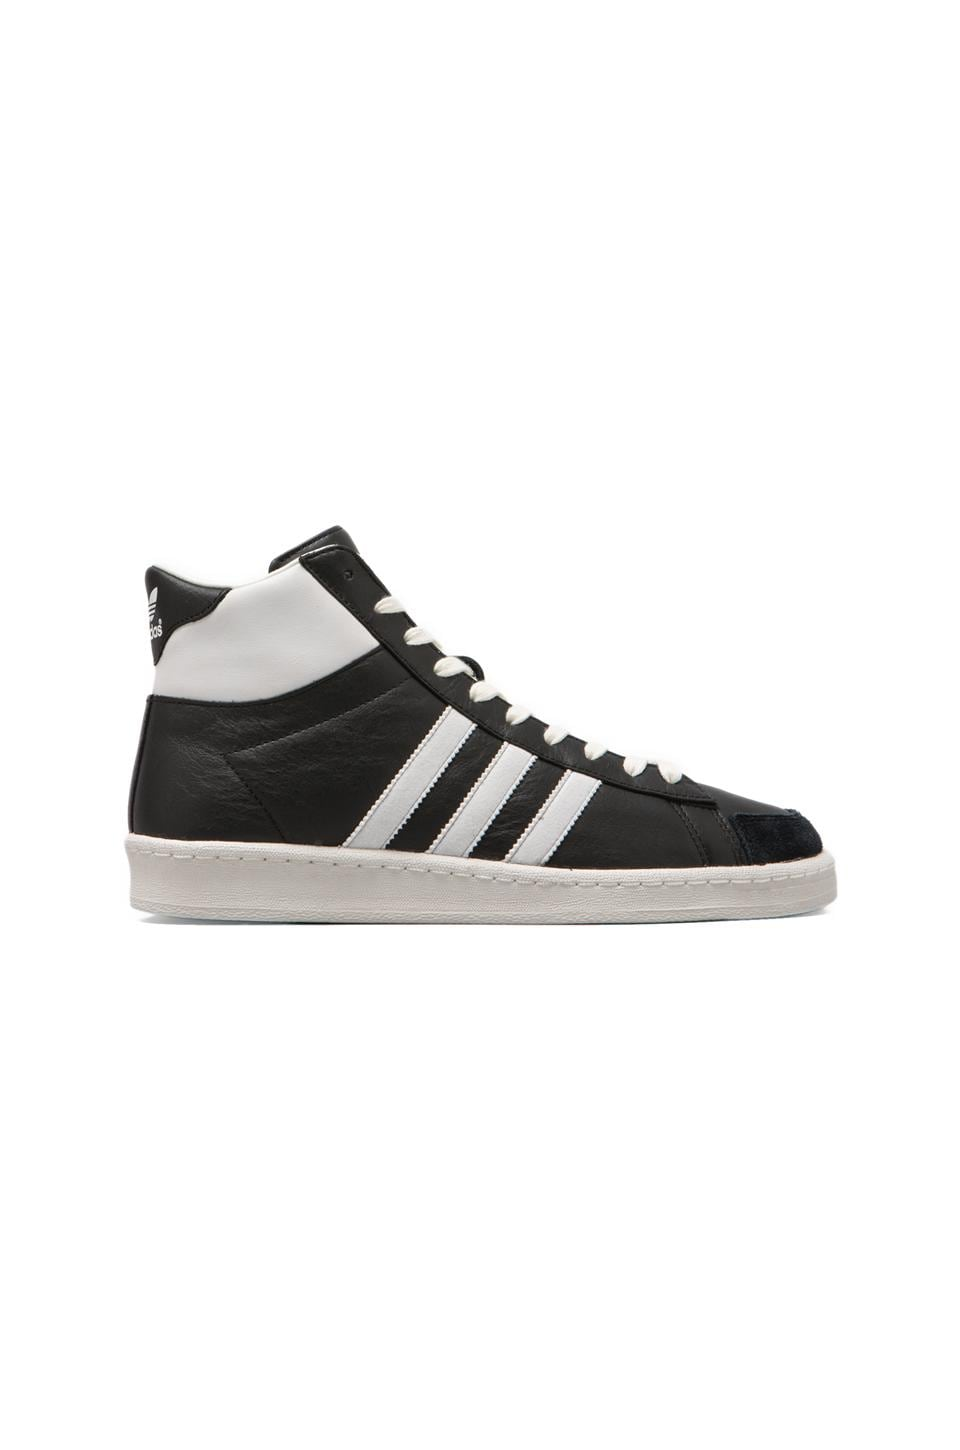 adidas Originals BLUE AO Hook Shot II in Black/Neo White/White Vapour